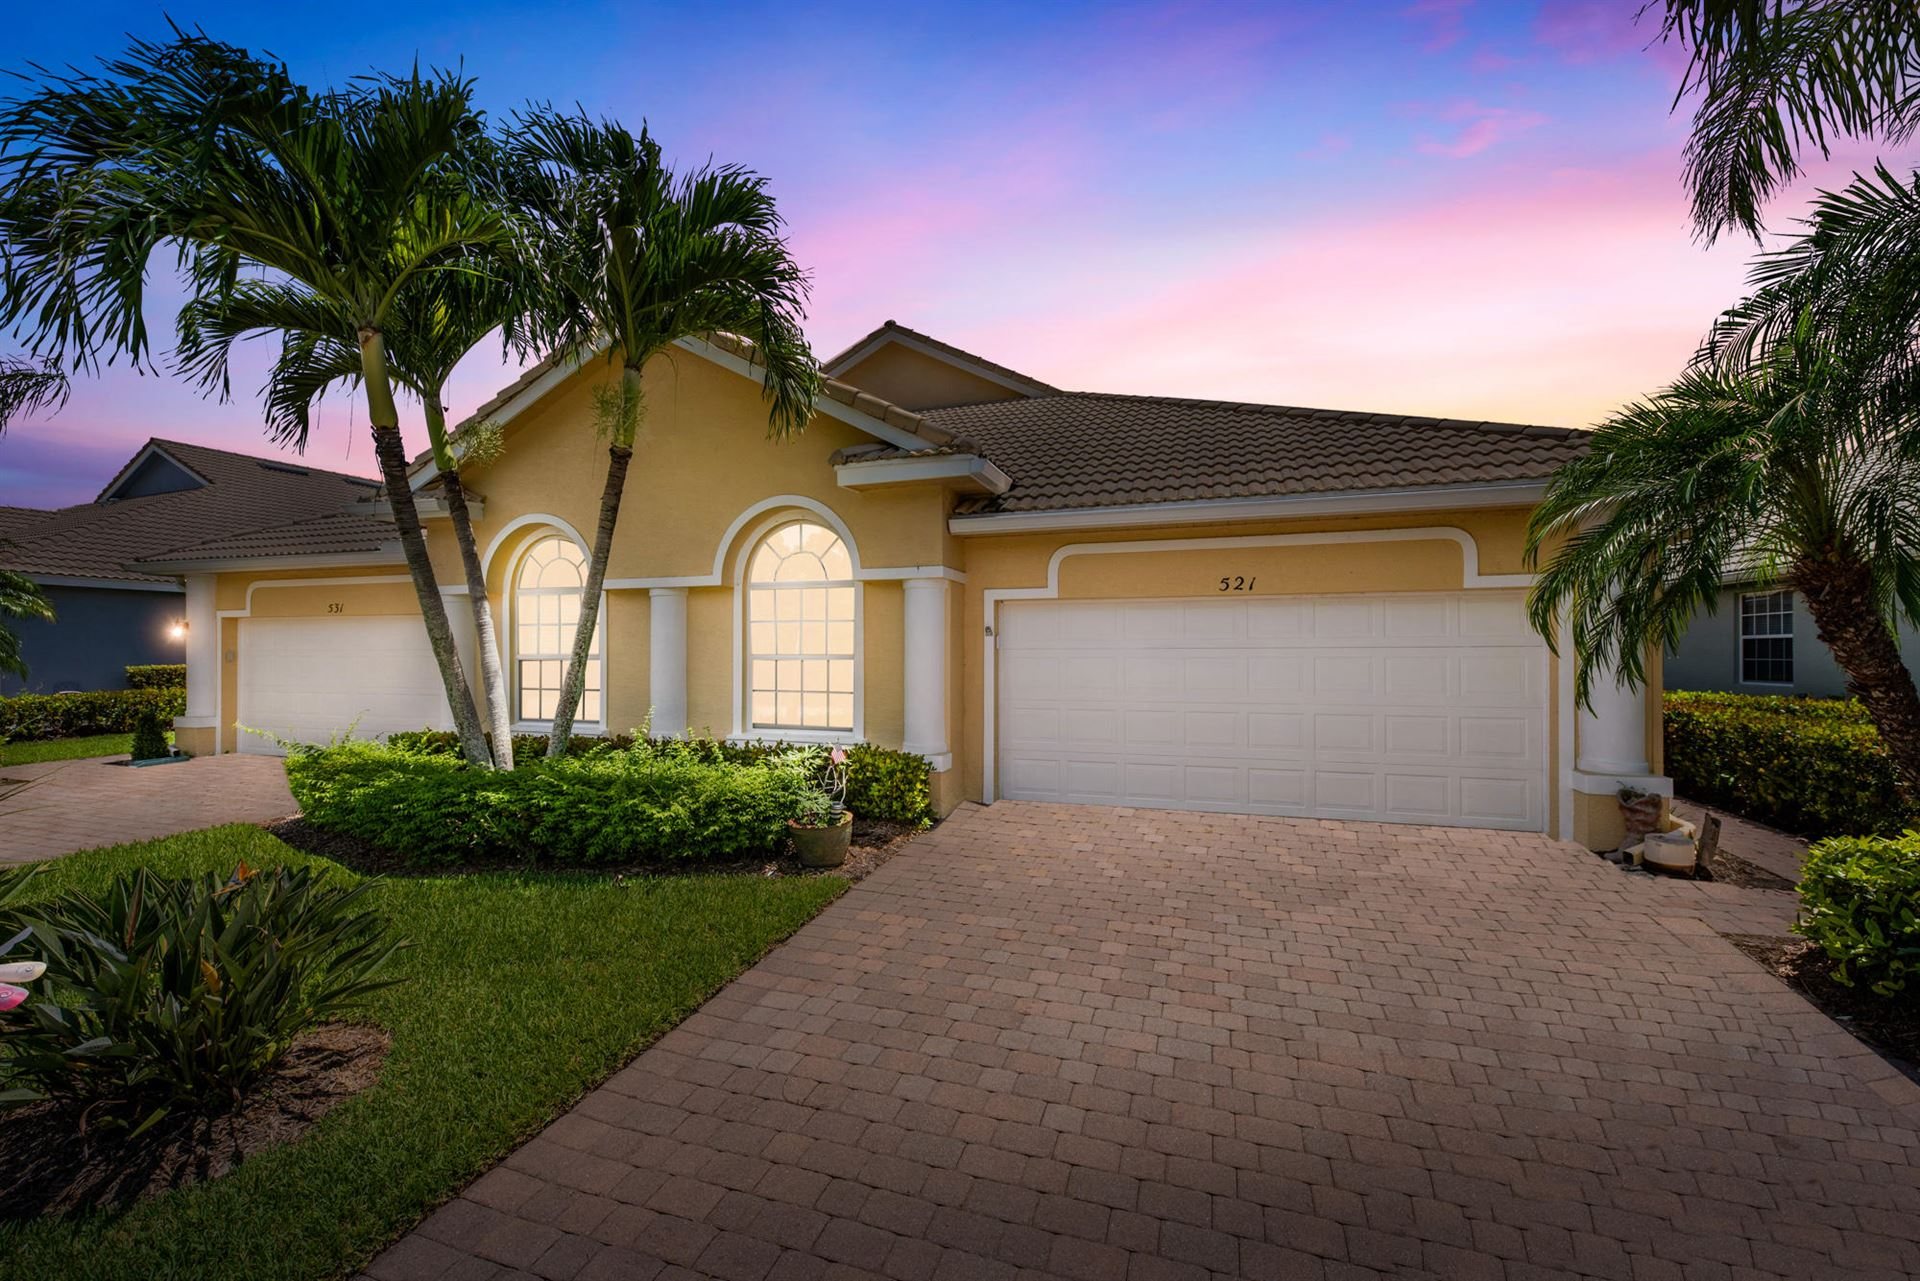 521 NW Red Pine Way, Jensen Beach, FL 34957 - #: RX-10640985